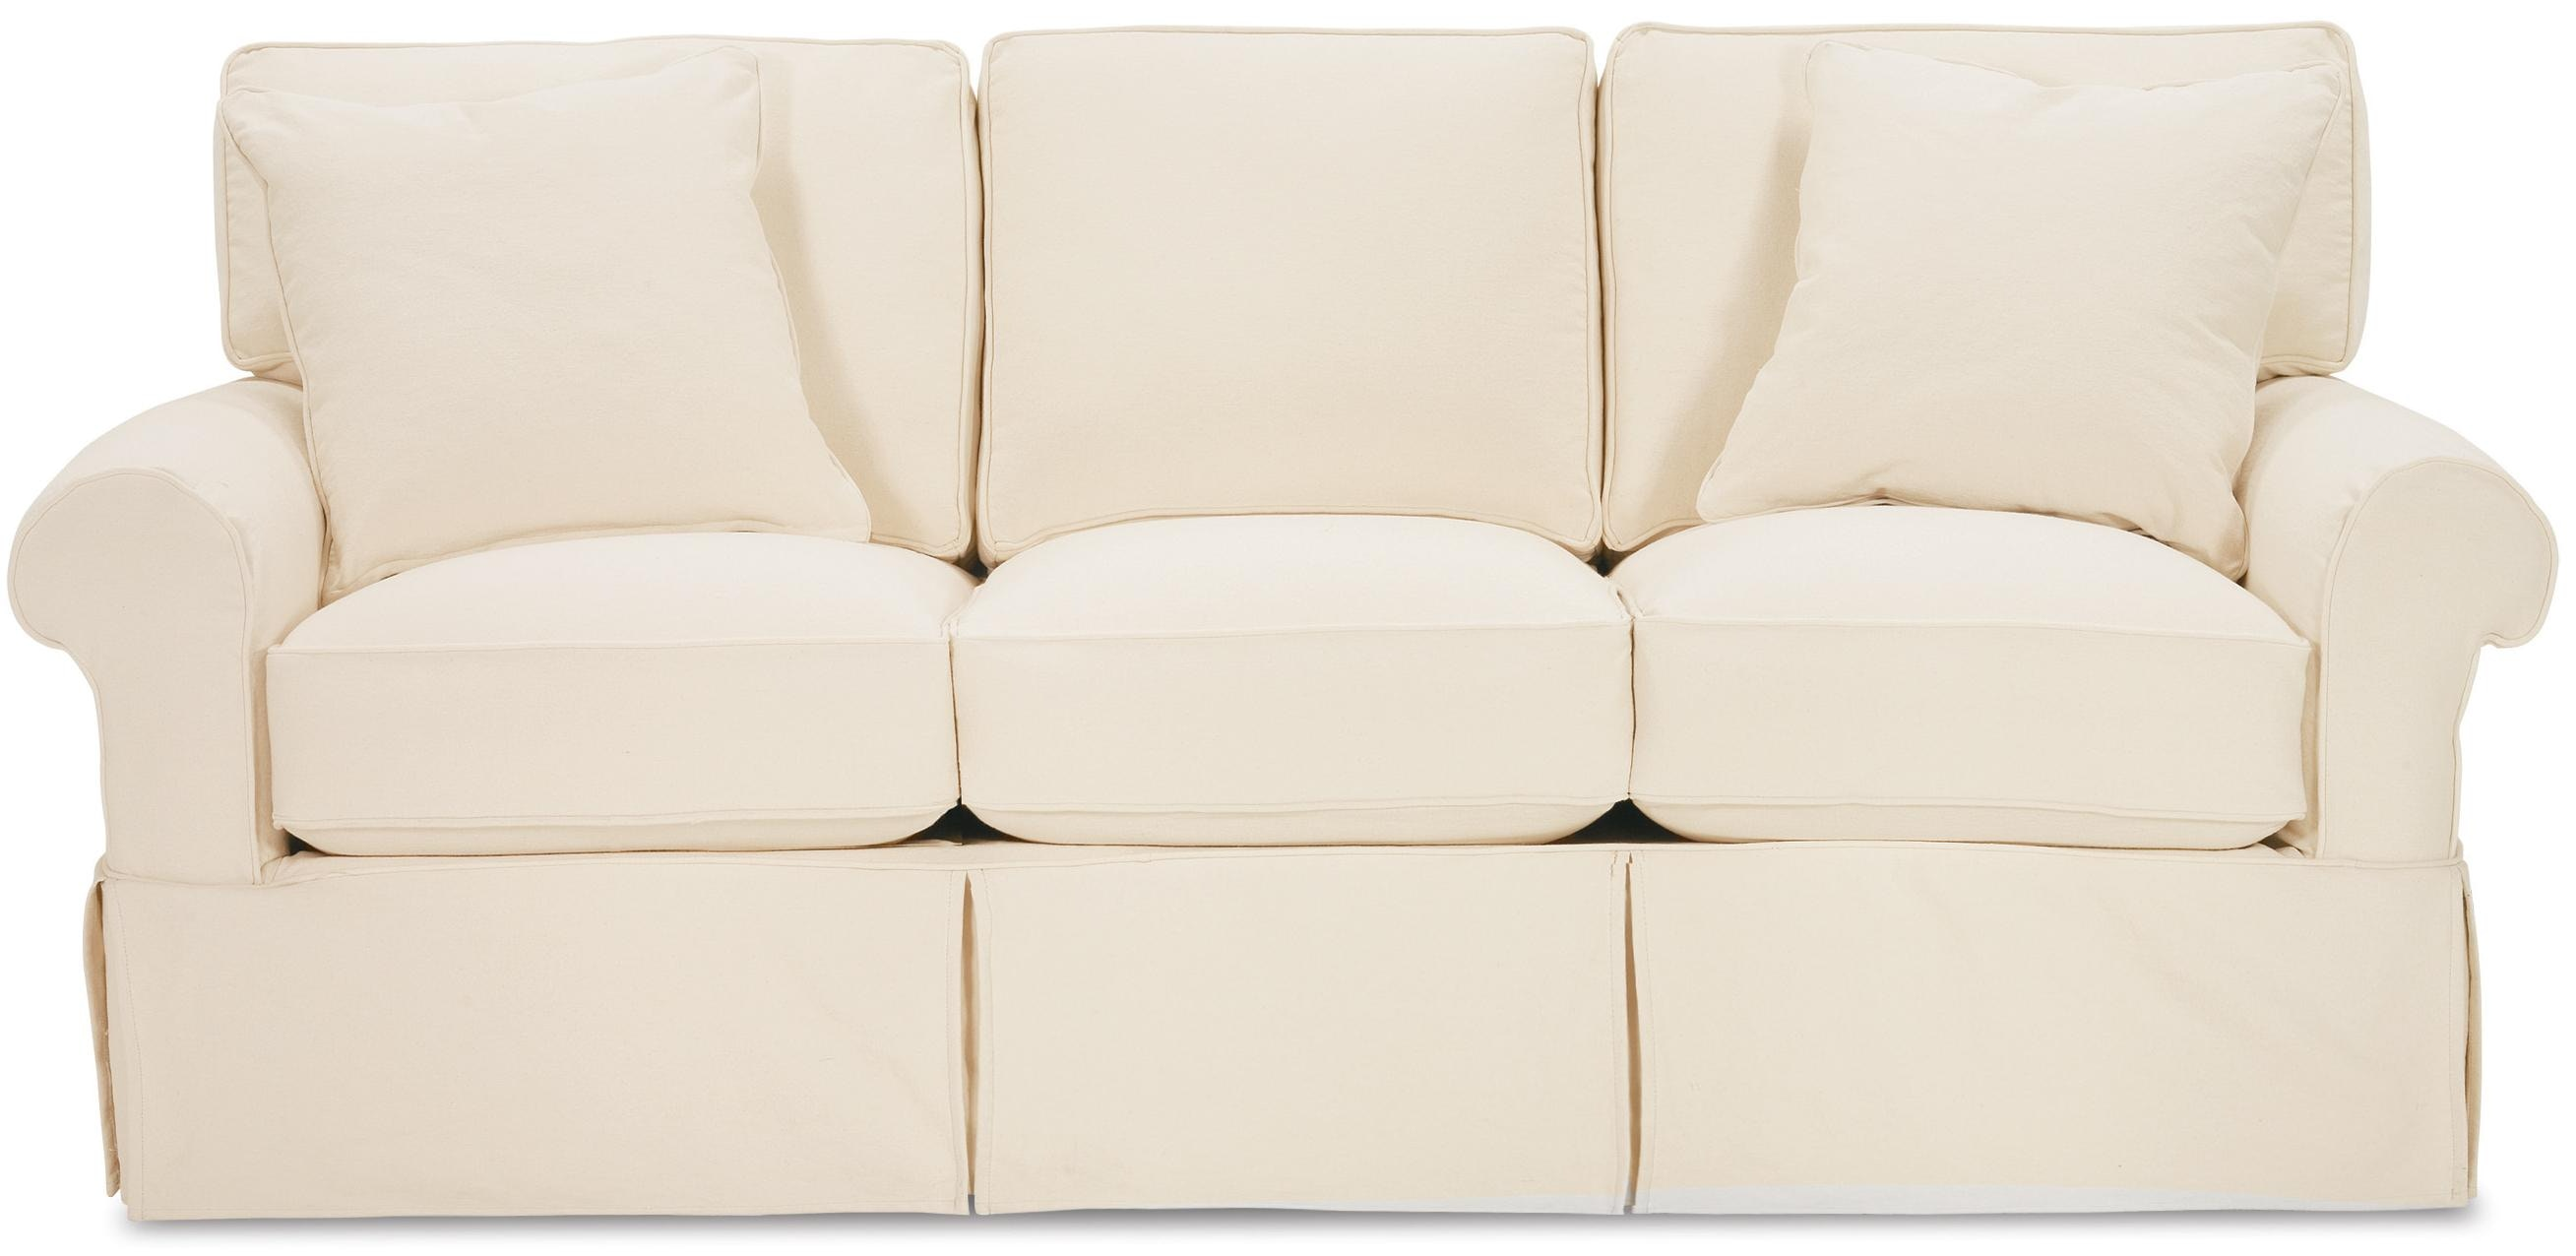 sofa with slipcover good slipcover sofas 91 for and Traditional Red Couch Decorating Ideas Red and Grey Design Ideas